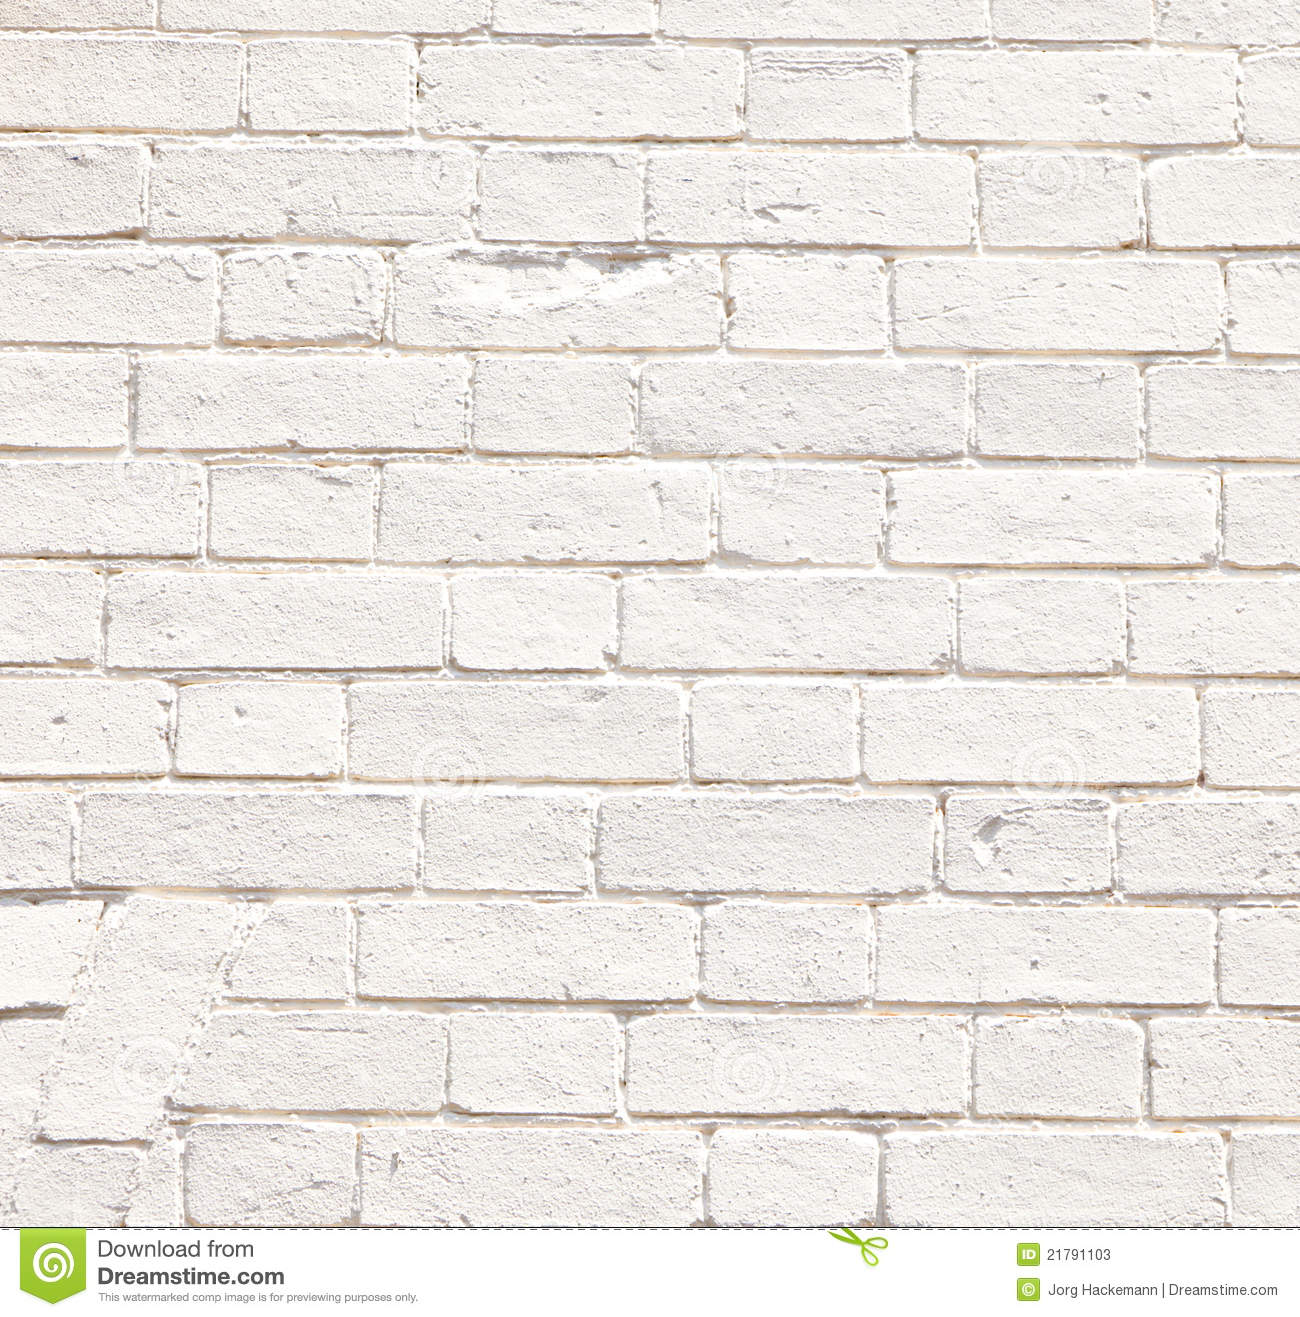 Hourwall Classicbrick Vintagewhite: Old White Brick Walls Of Historic Houses Stock Image